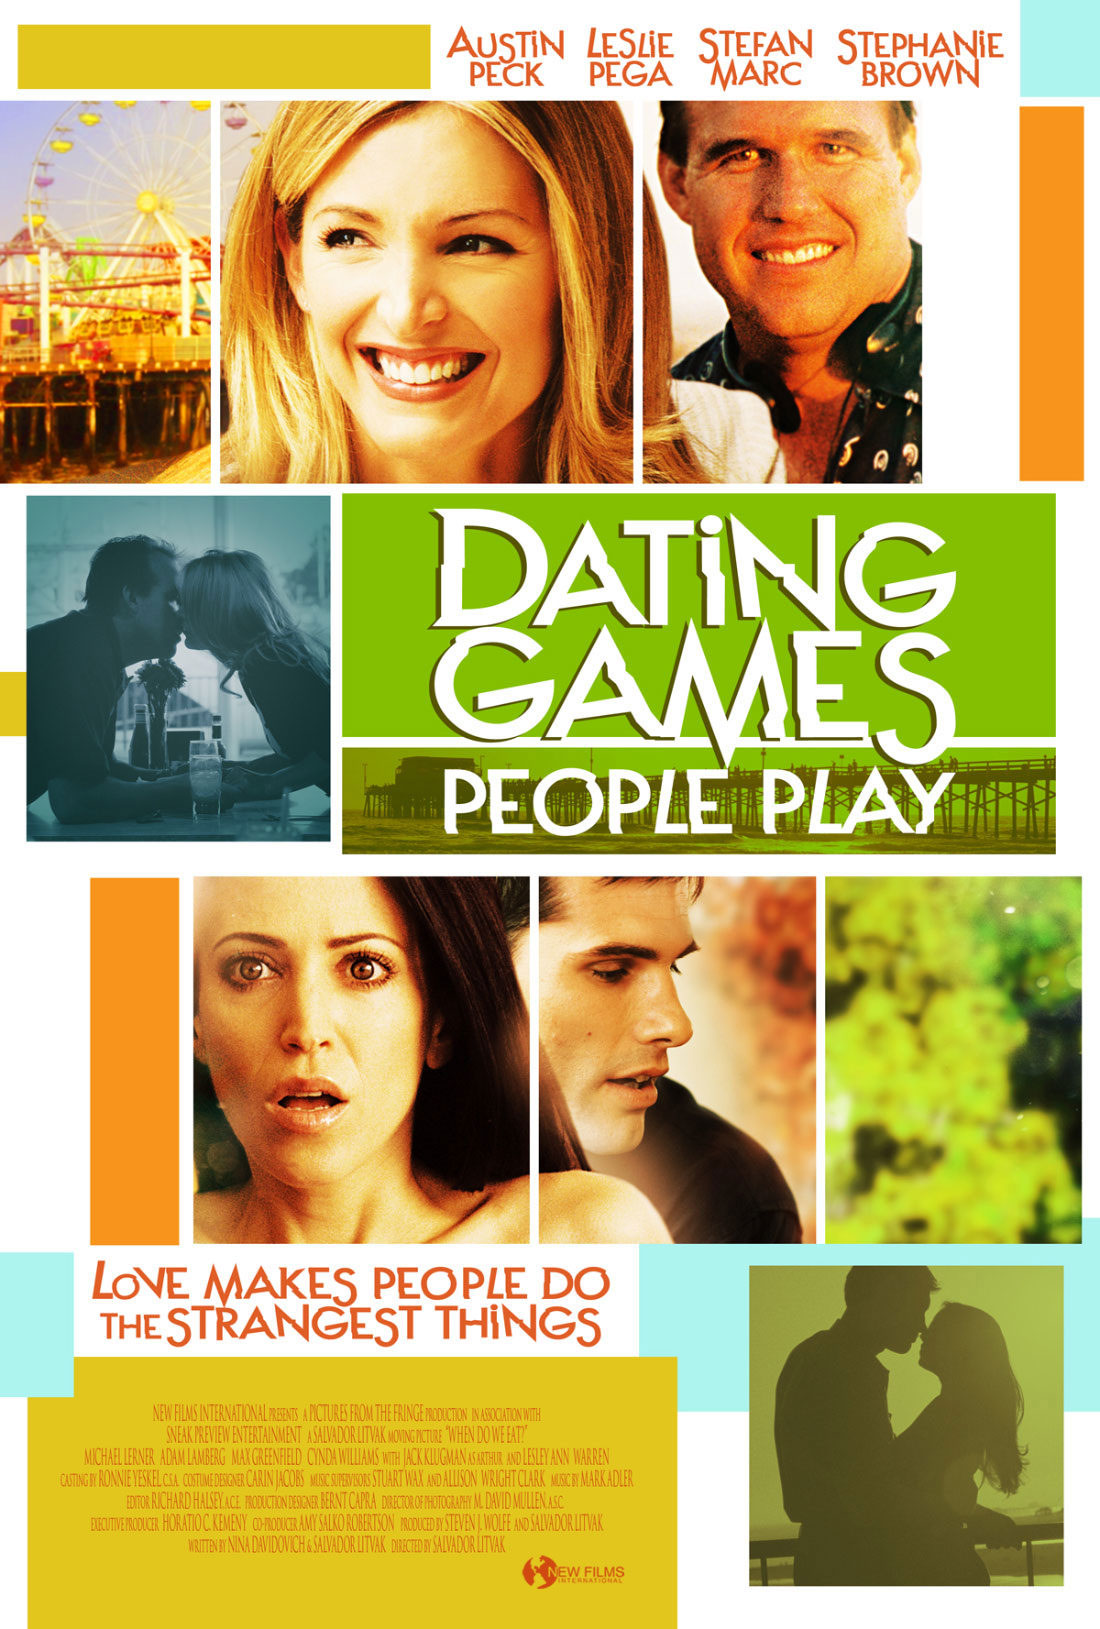 dating-games-people-play-01